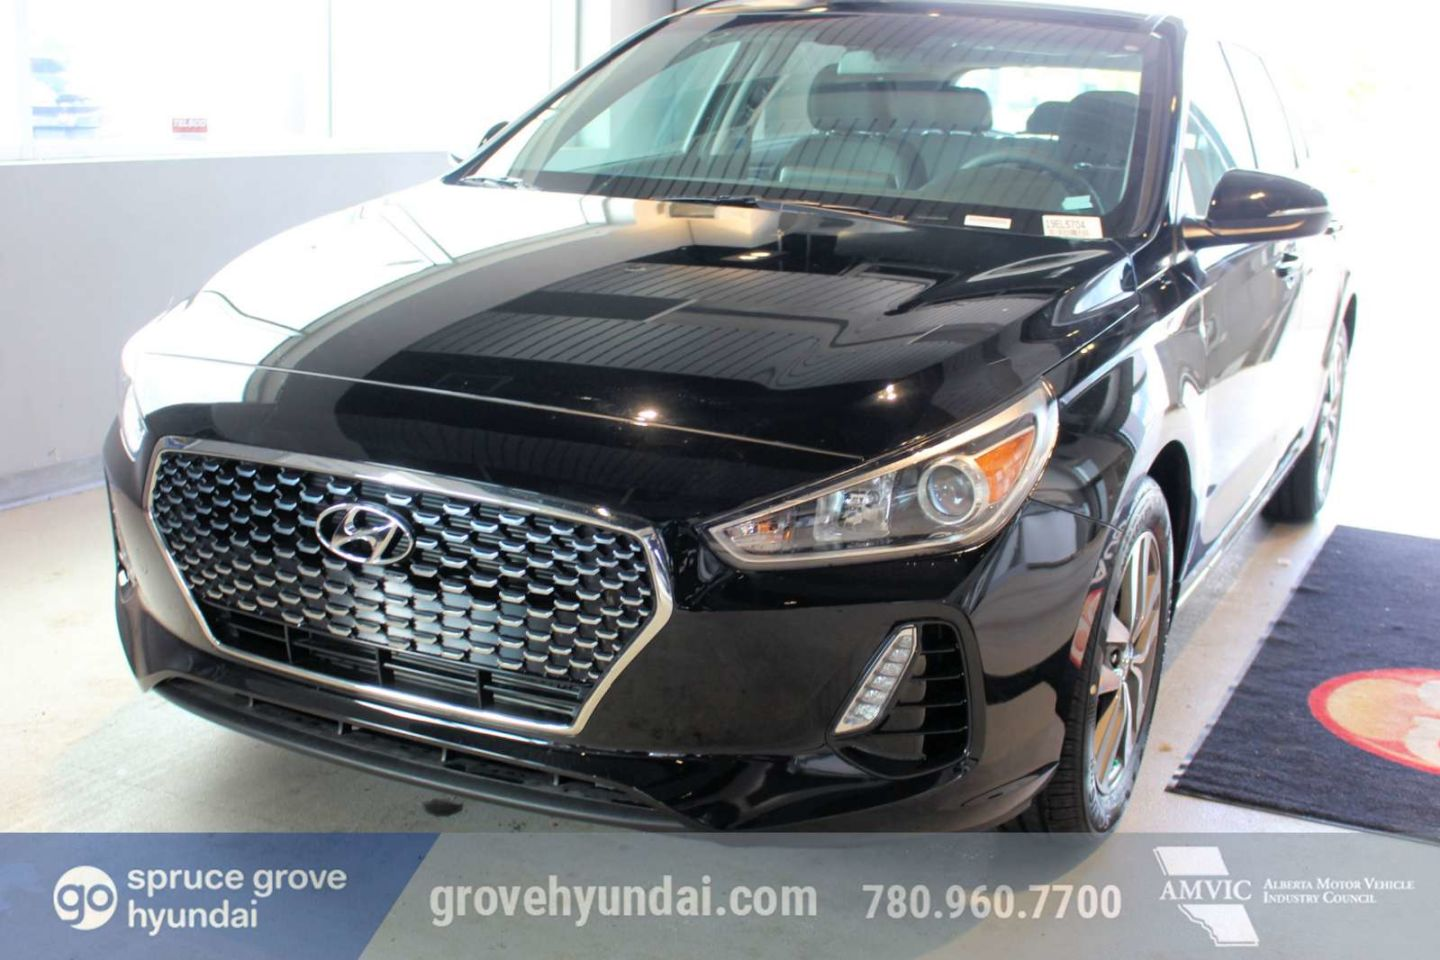 2019 Hyundai Elantra GT Preferred for sale in Spruce Grove, Alberta